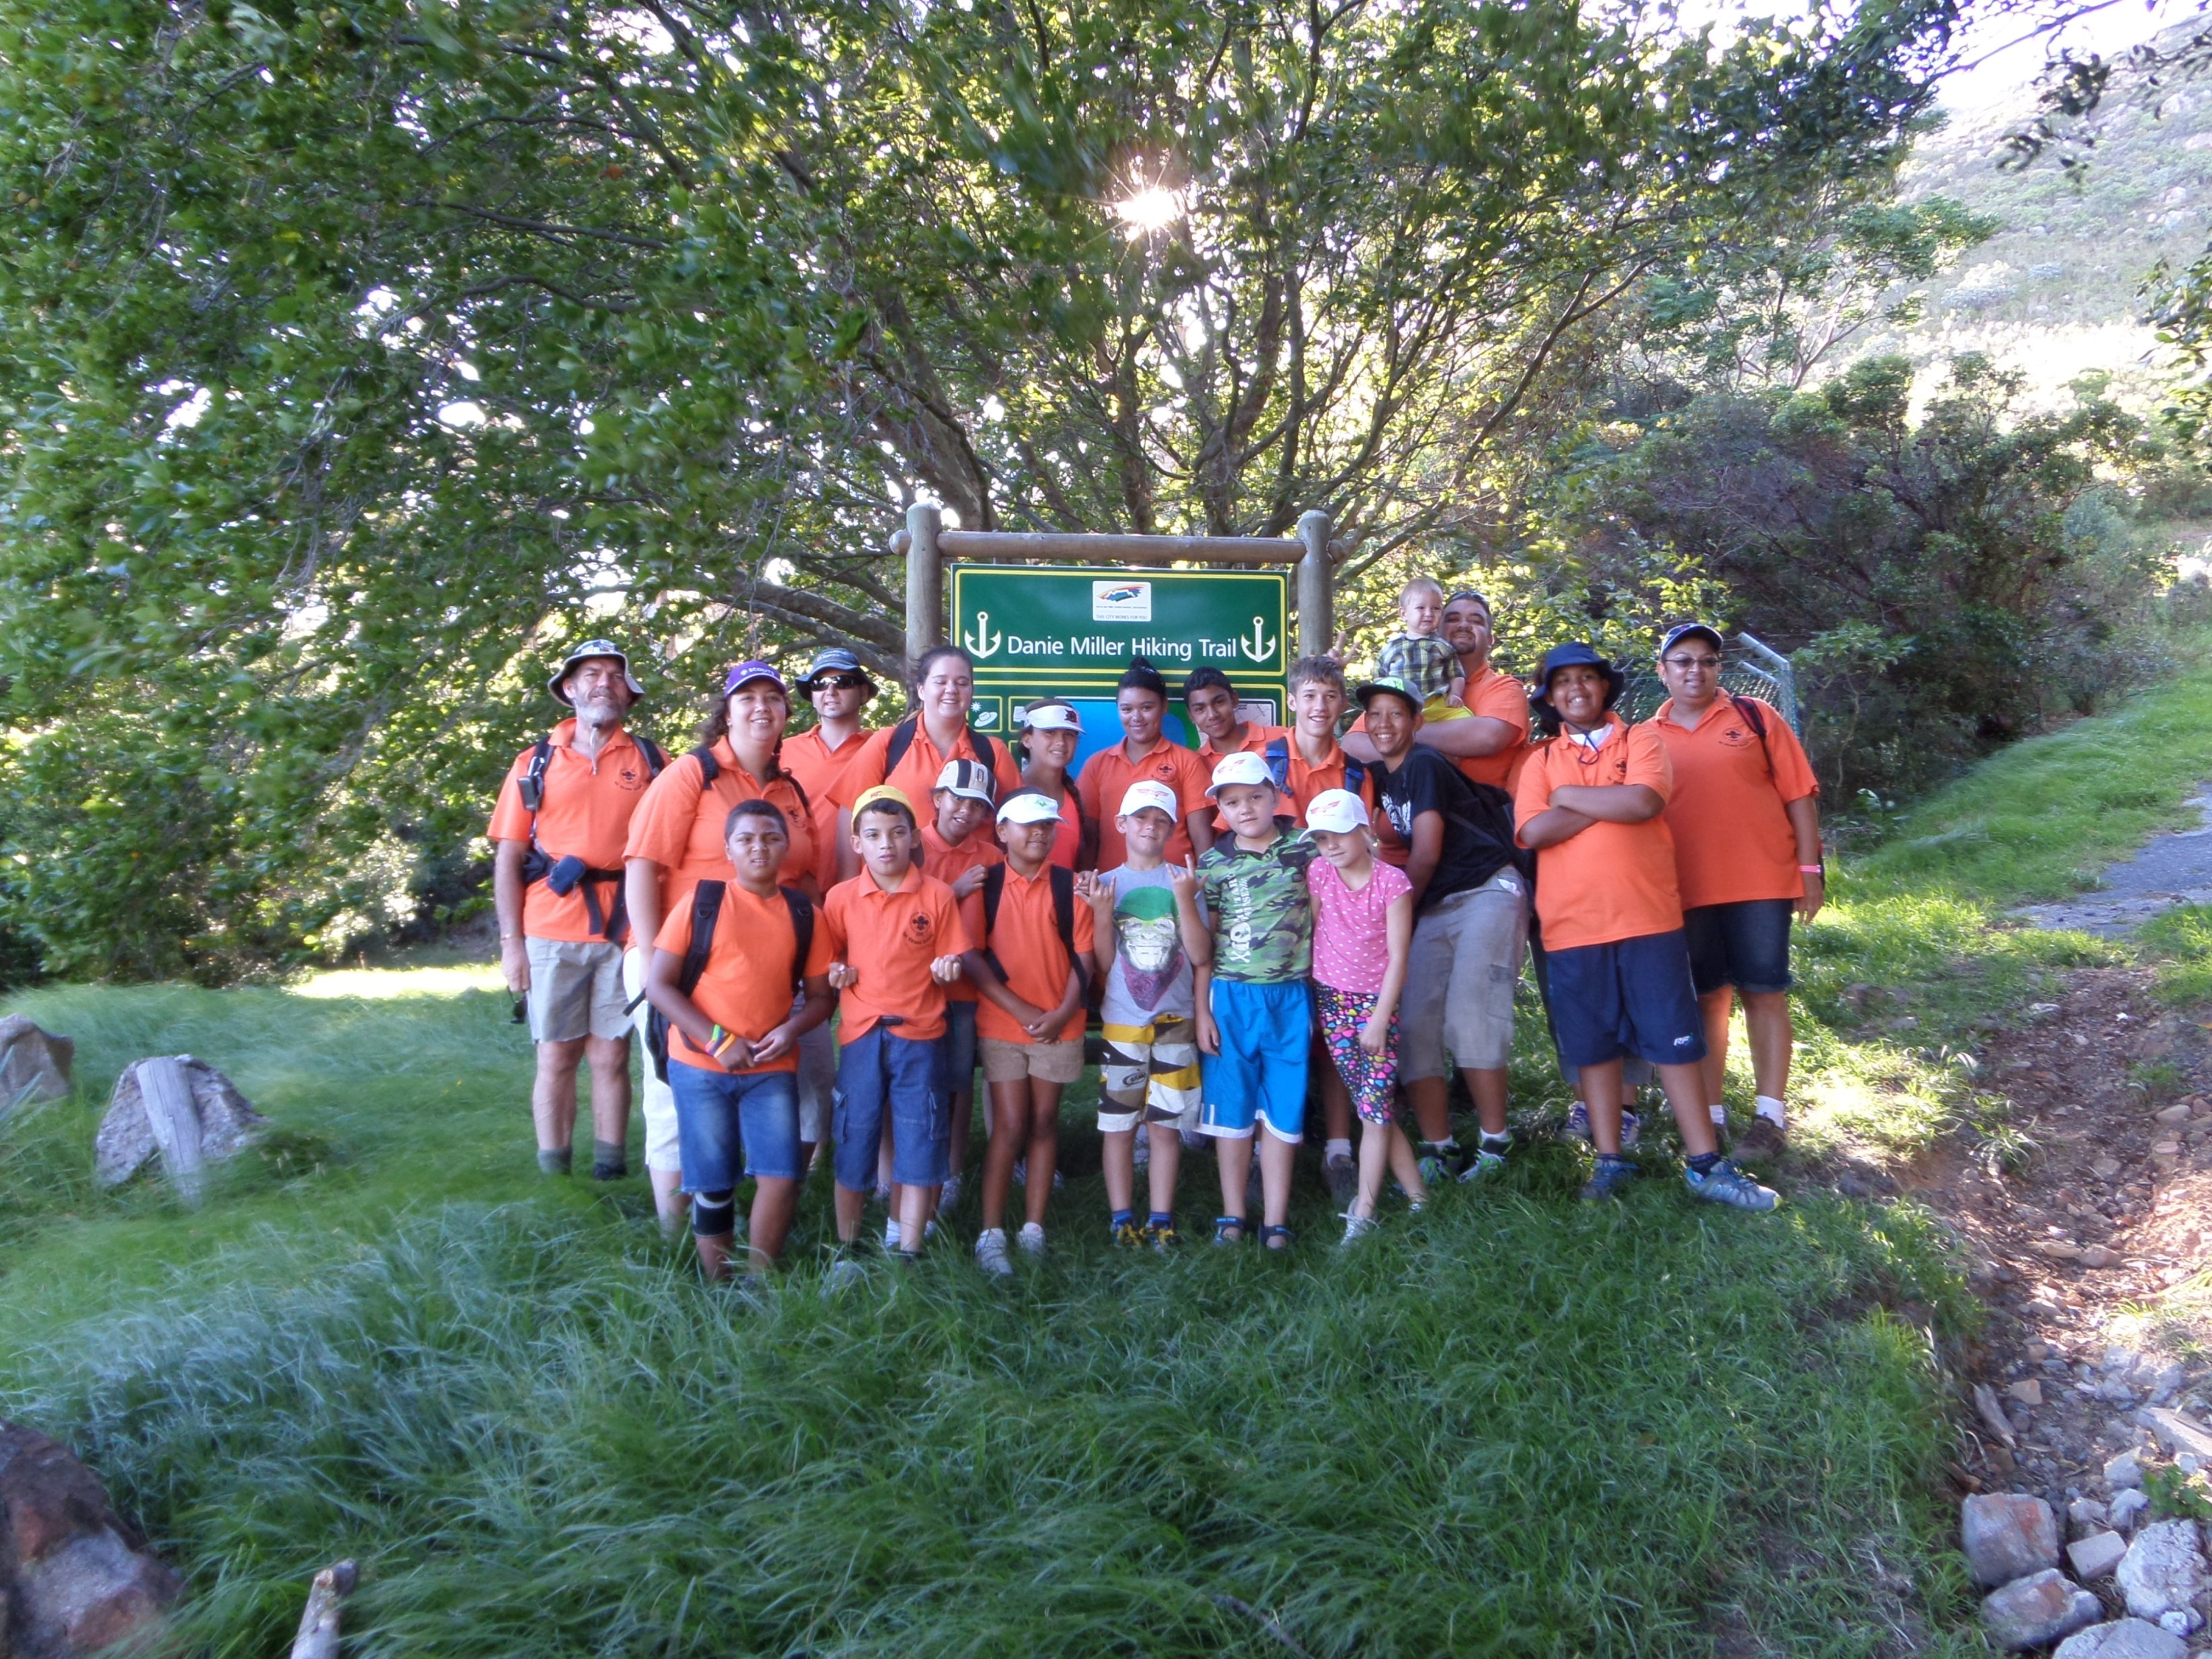 The group at the start of the trail.